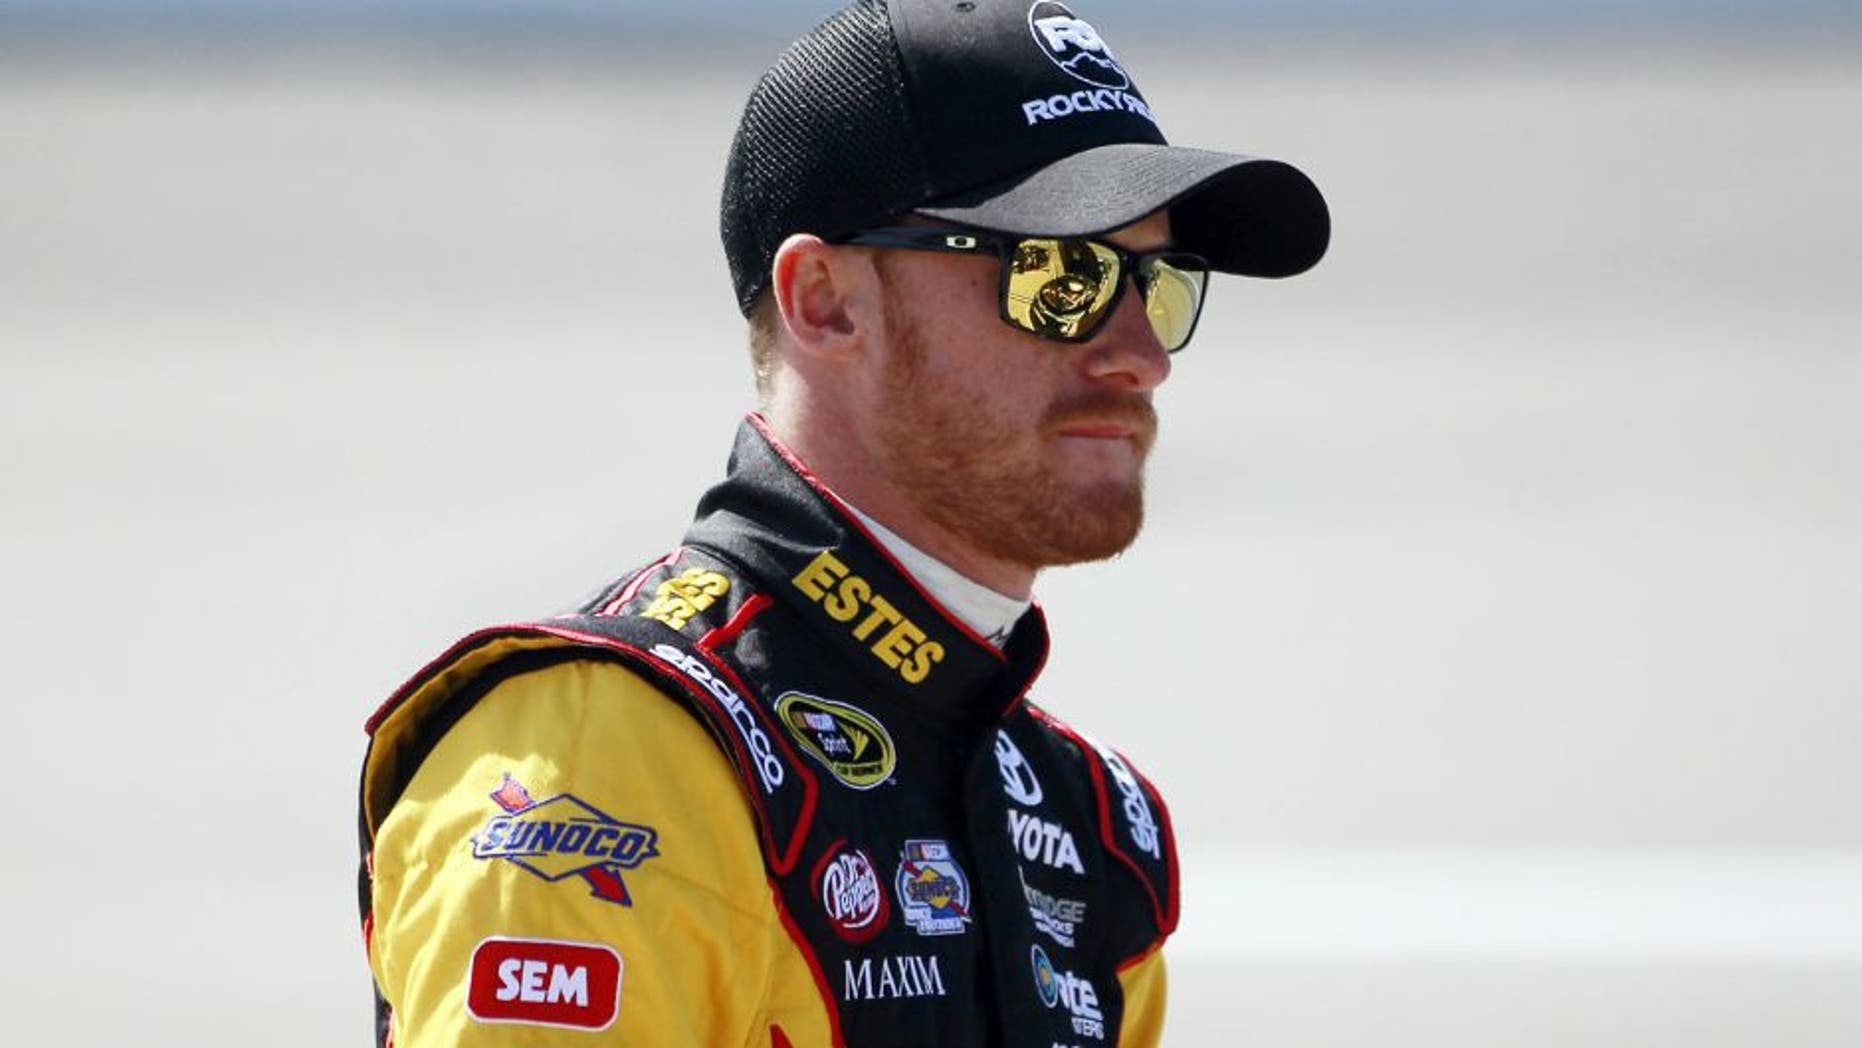 RICHMOND, VA - APRIL 24: Jeb Burton, driver of the #26 Estes Express Lines Toyota, stands on the grid during practice for the NASCAR Sprint Cup Series Toyota Owners 400 at Richmond International Raceway on April 24, 2015 in Richmond, Virginia. (Photo by Brian Lawdermilk/NASCAR via Getty Images)